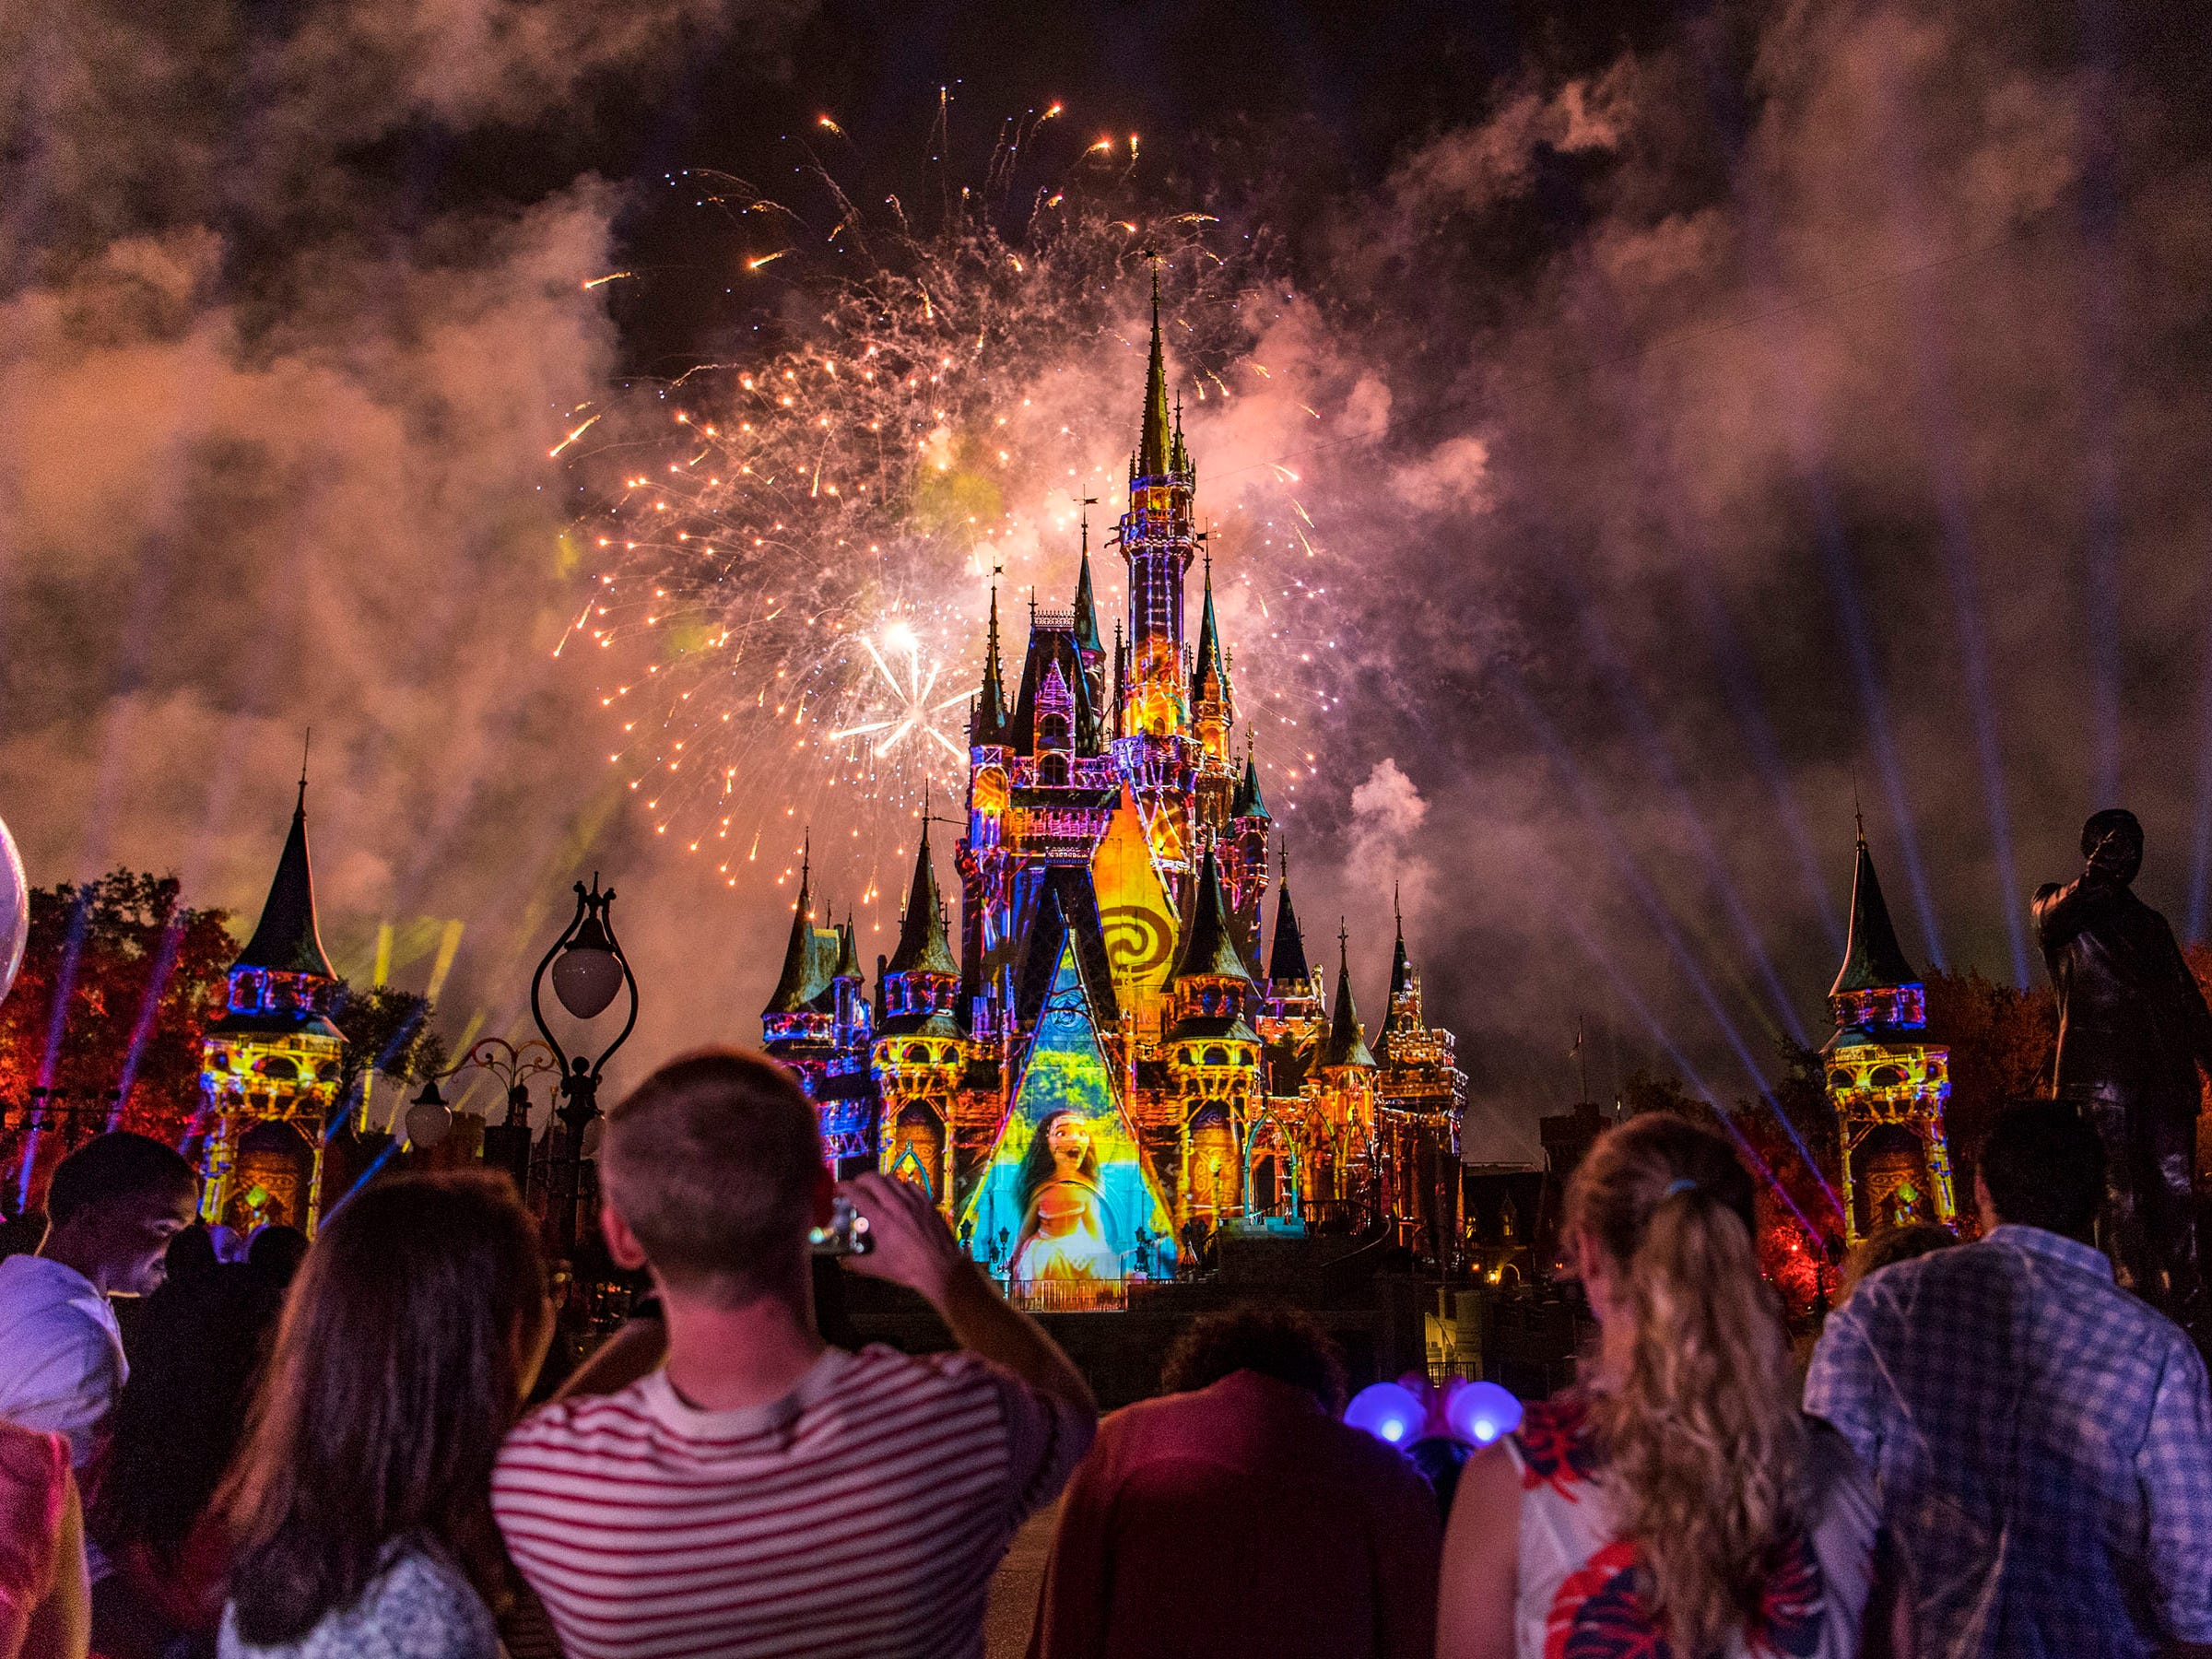 While there are fireworks every night at Walt Disney World in Lake Buena Vista, Florida, the theme park welcomes New Year's with a bang.